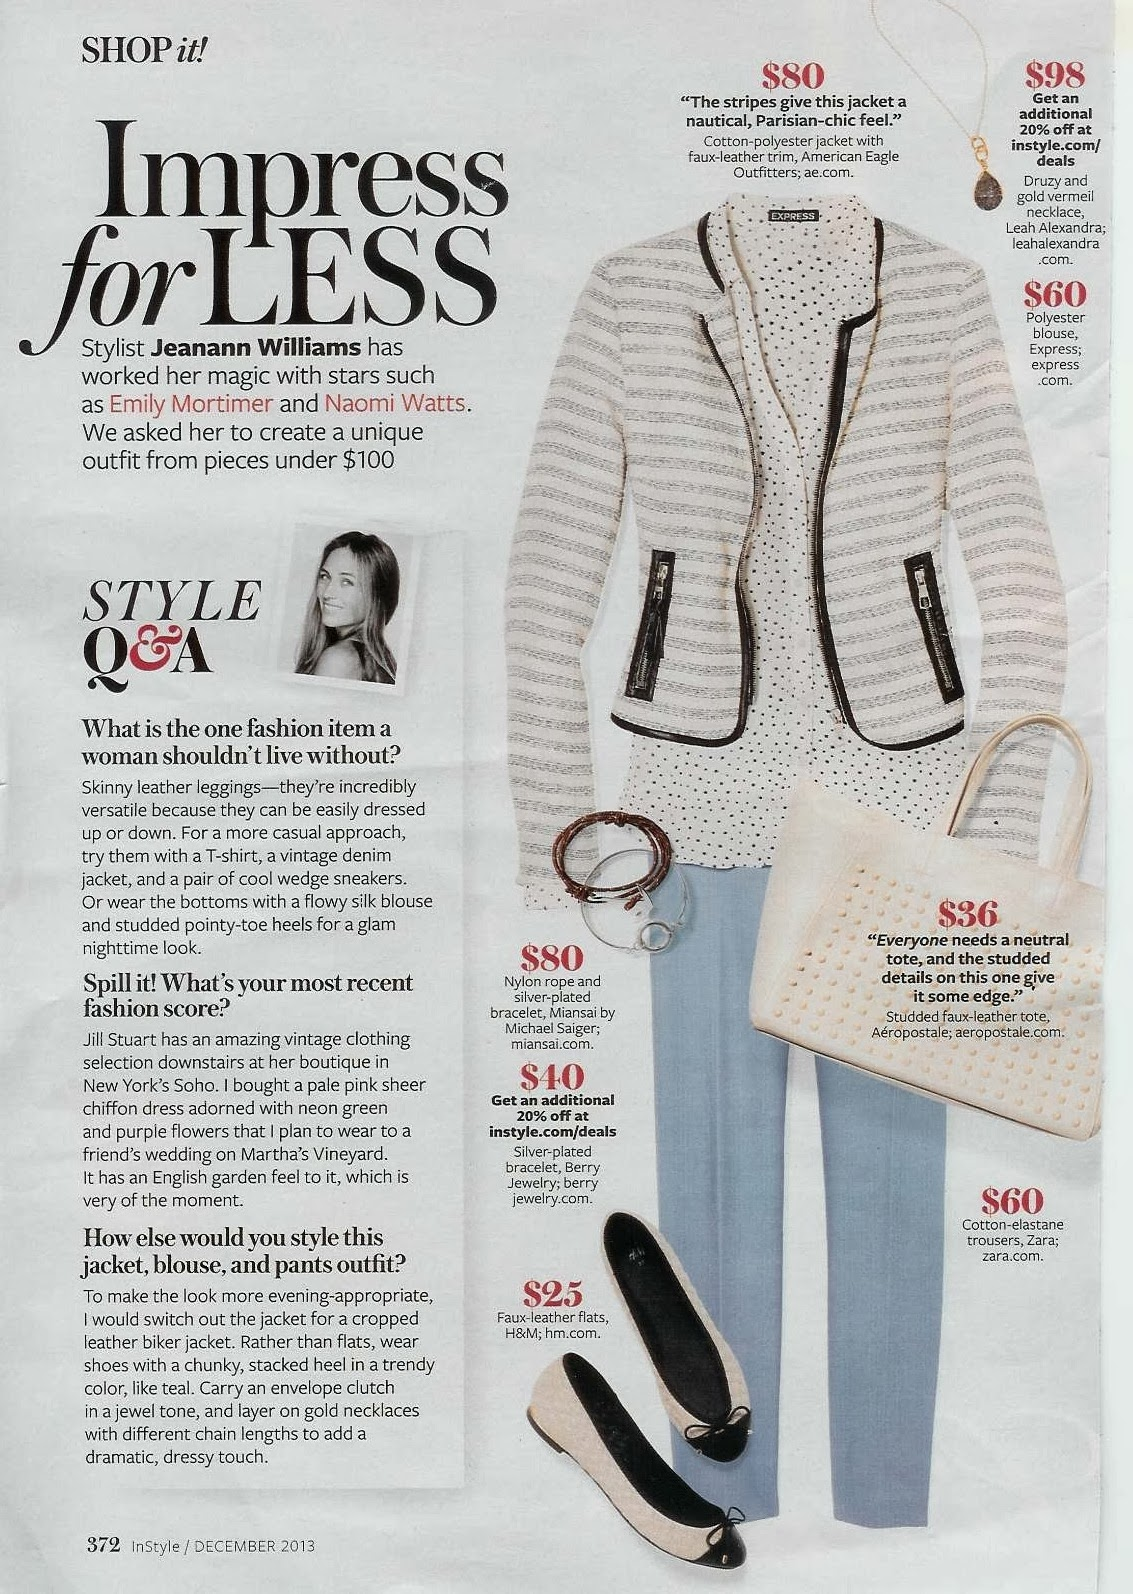 Express shirt in magazine, Express star portofino, Express In Style, Star shirt